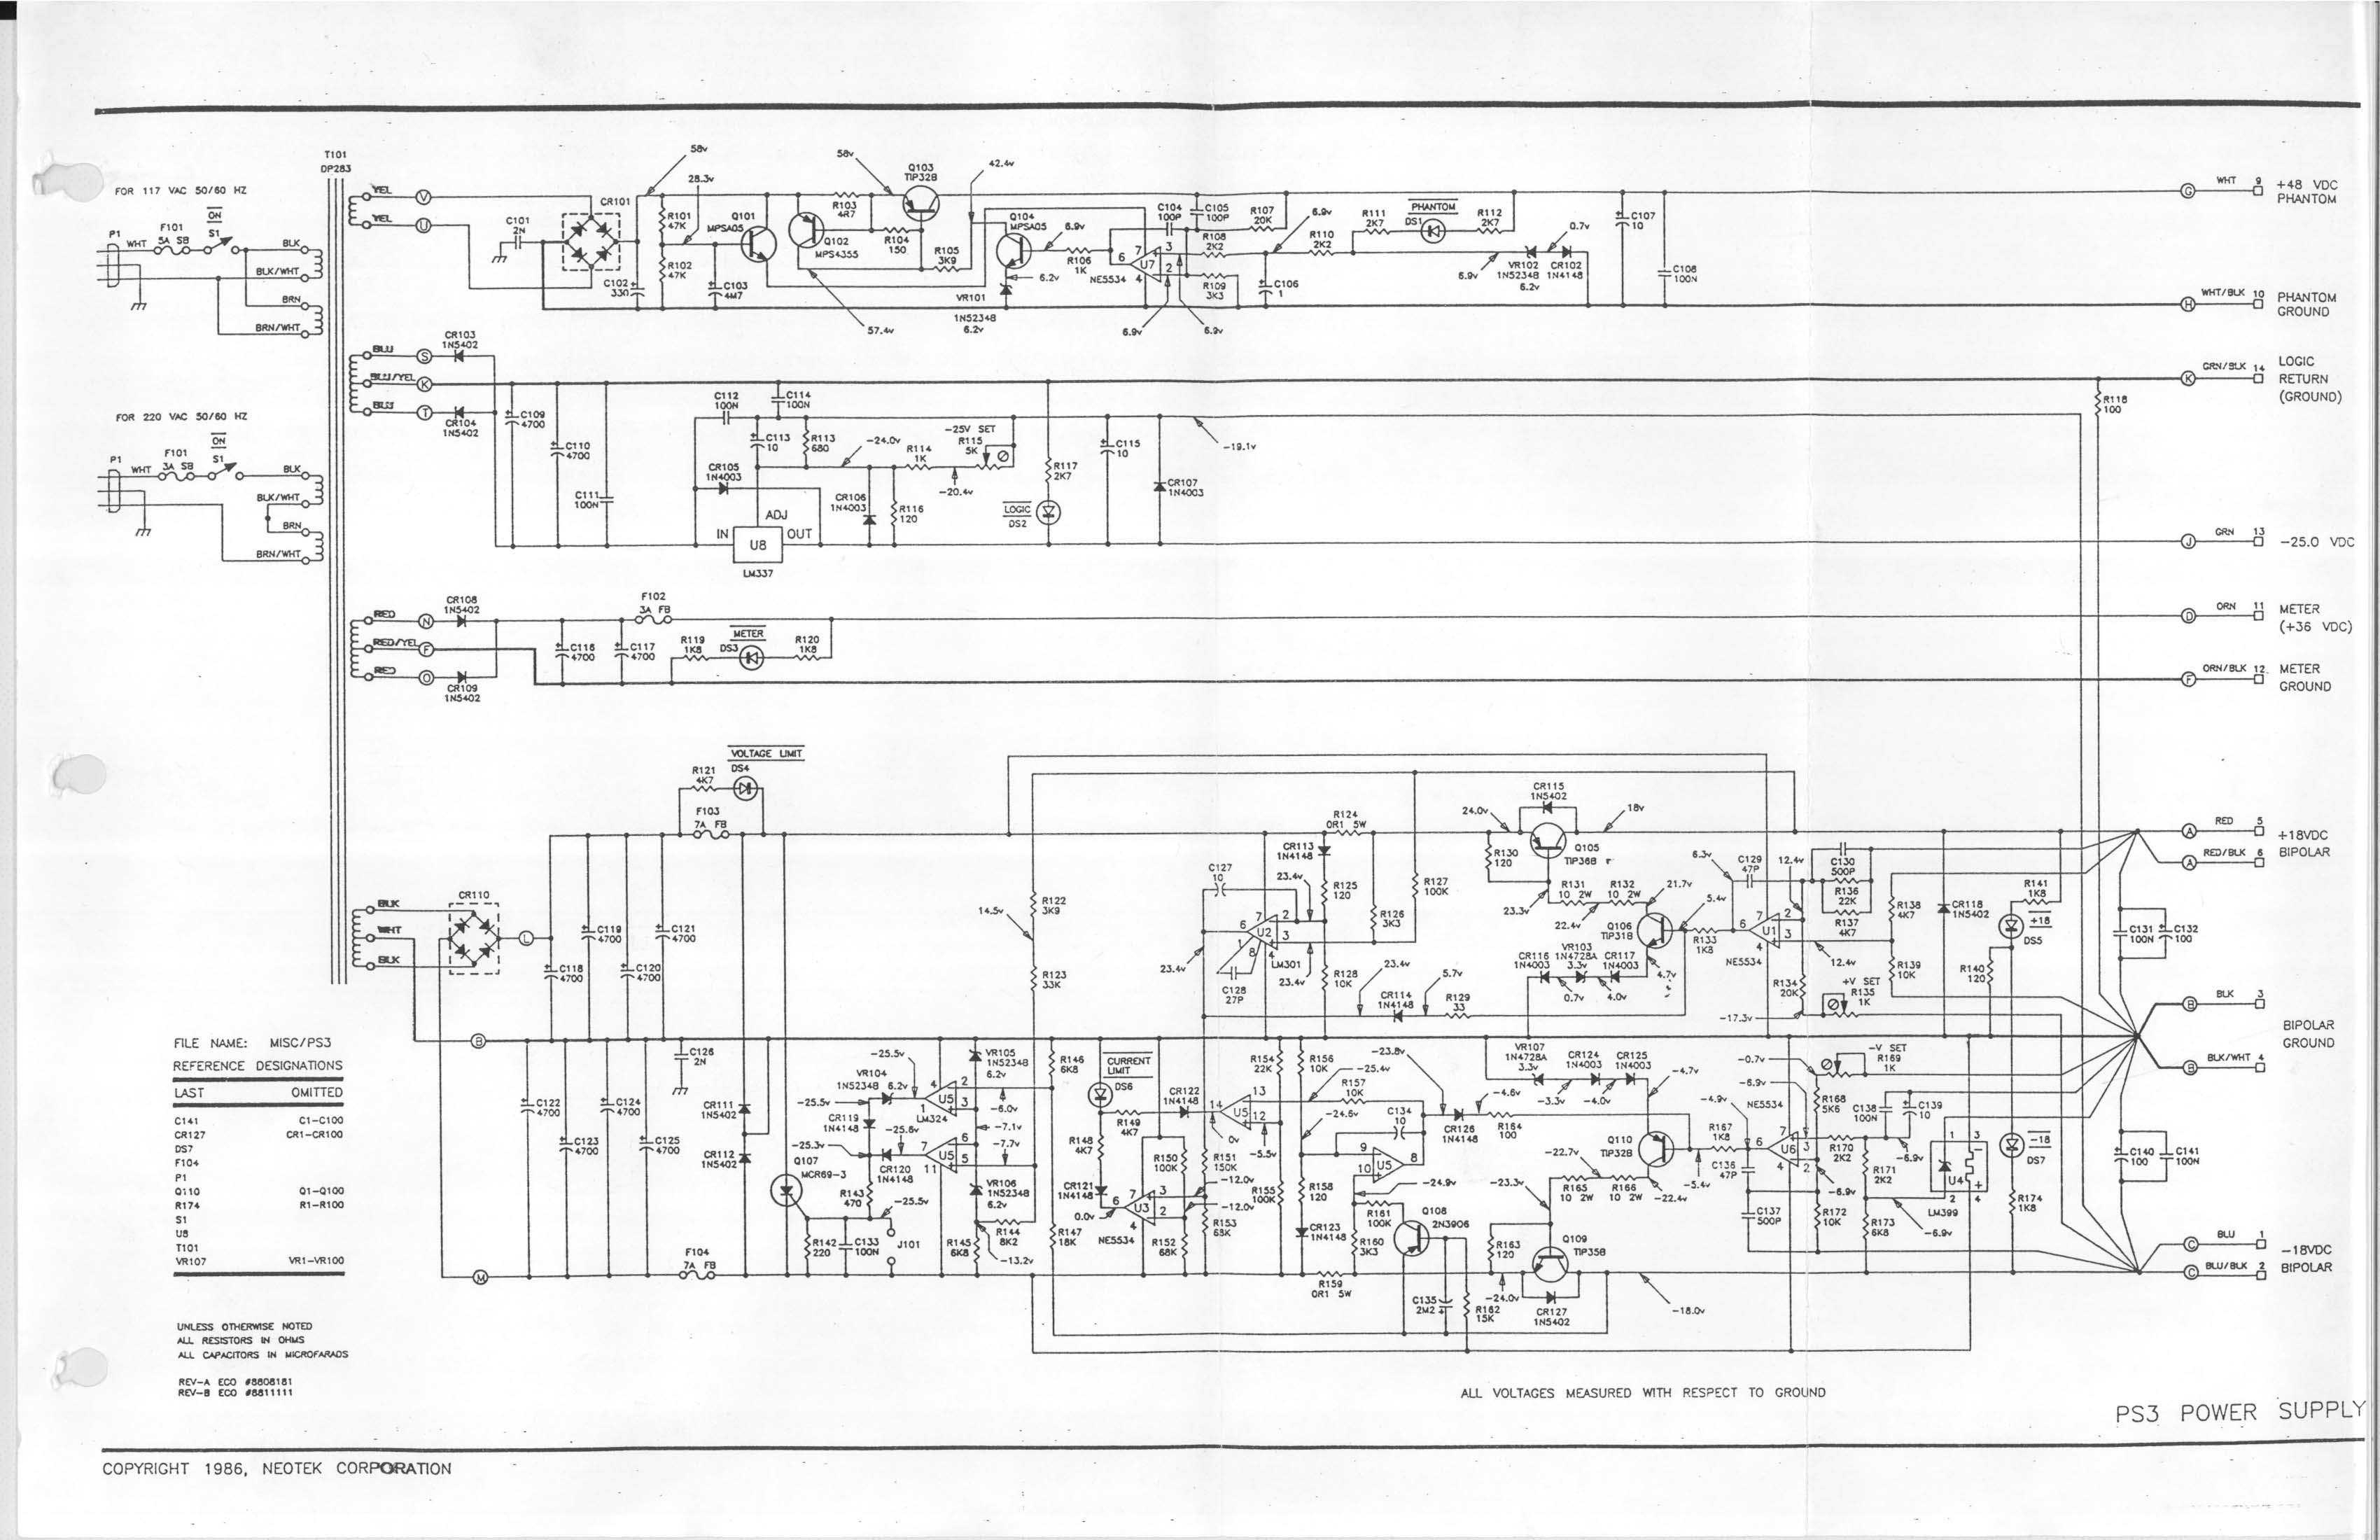 Playstation 3 Block Diagram Free Wiring For You Schematic To Xbox Console Download Parts